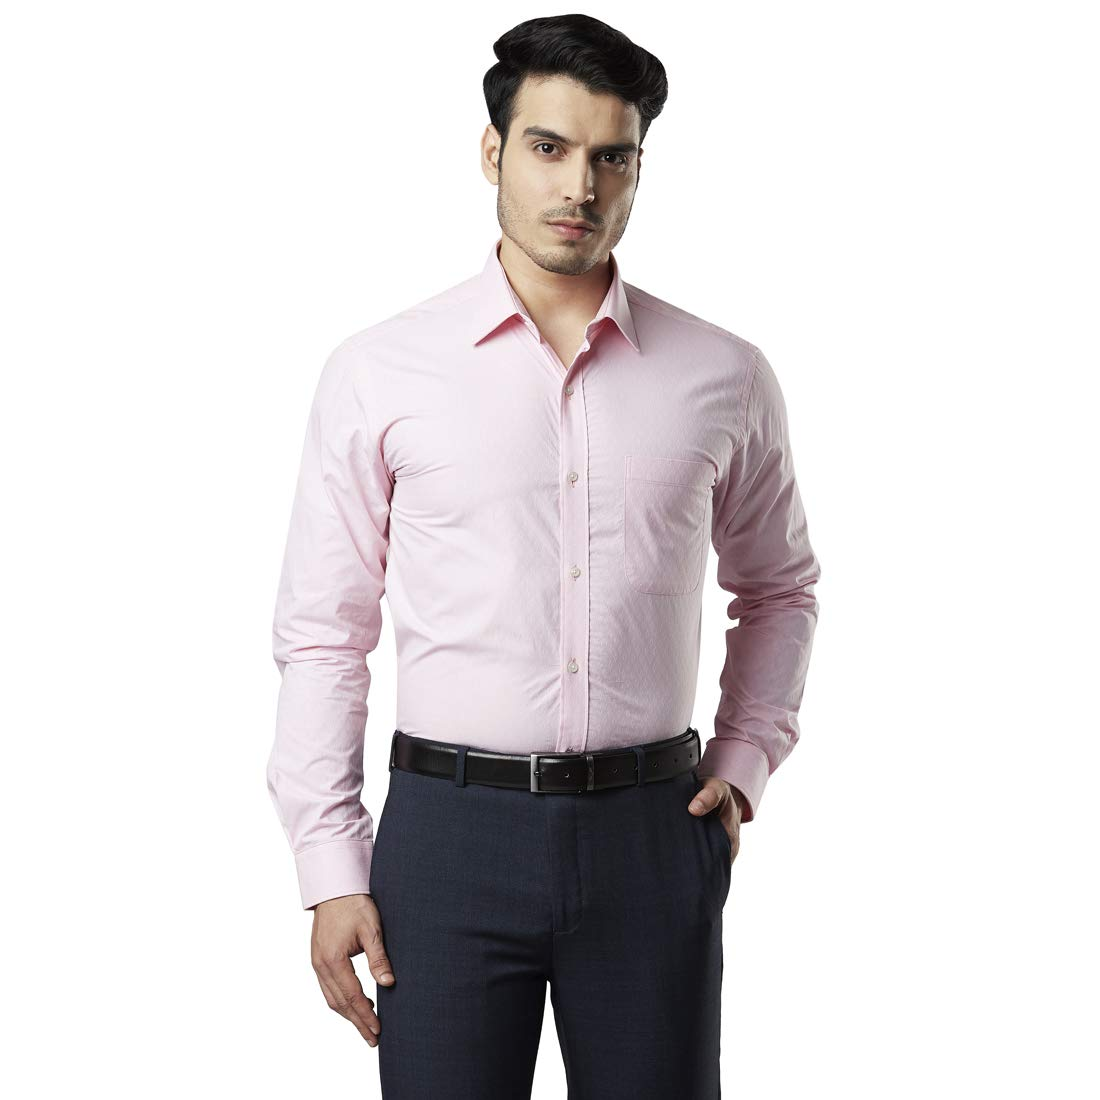 red shirt for civil services and upsc